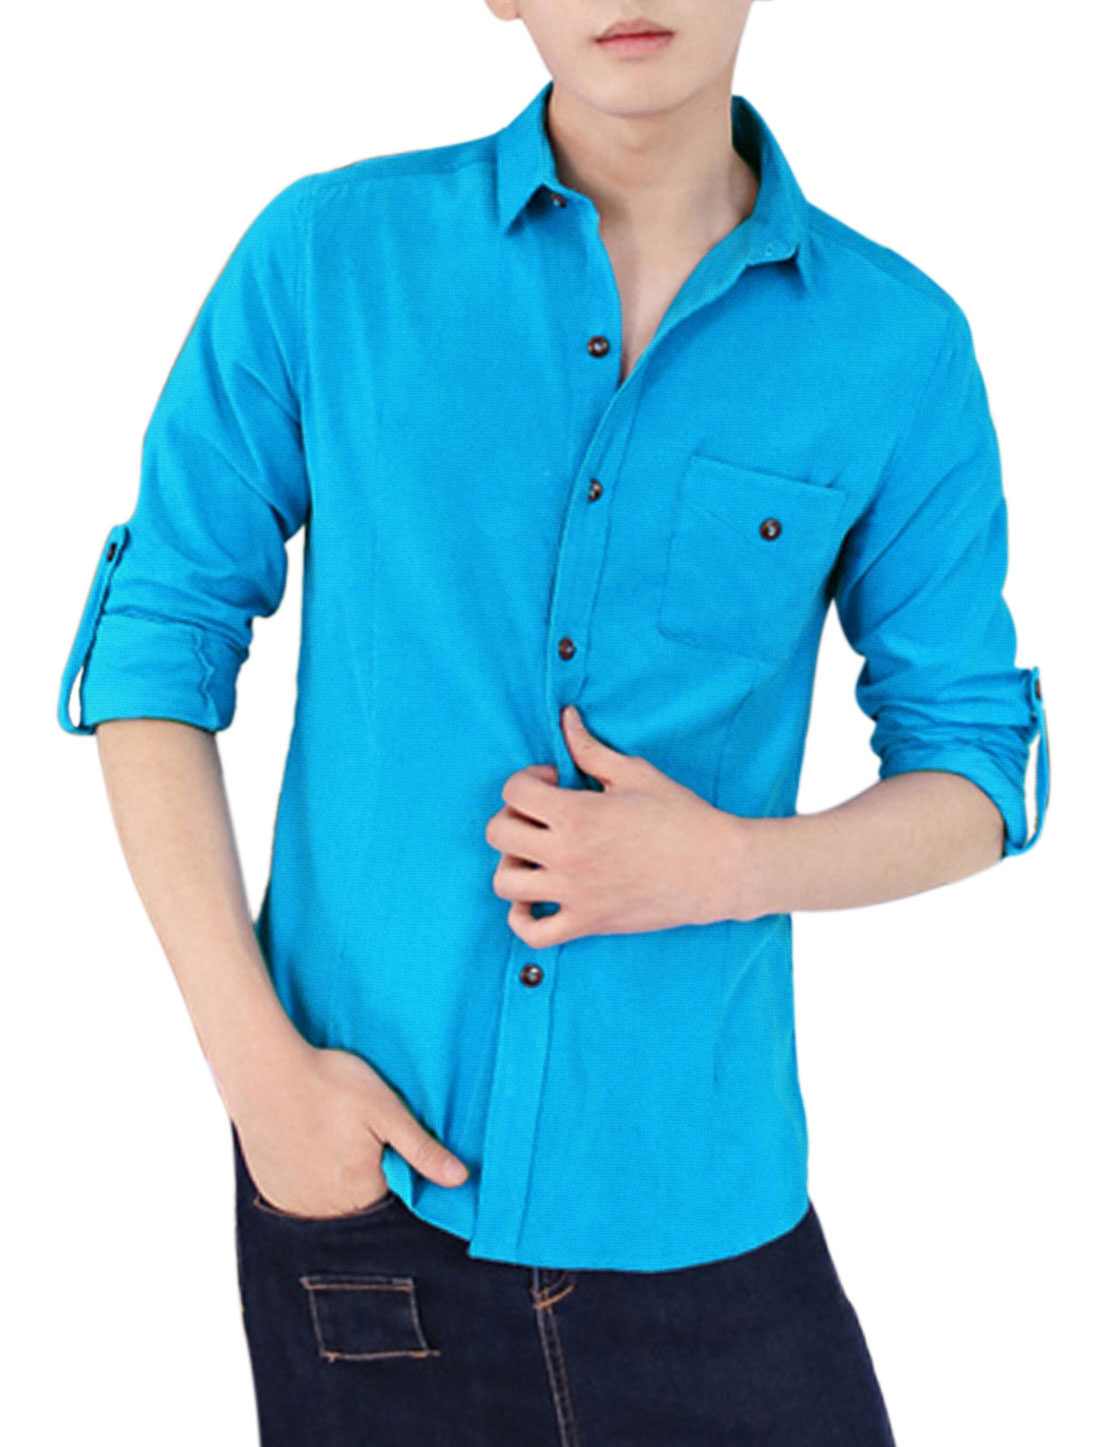 Men Slim Fit Button Closed Point Collar Corduroy Shirt Turquoise S